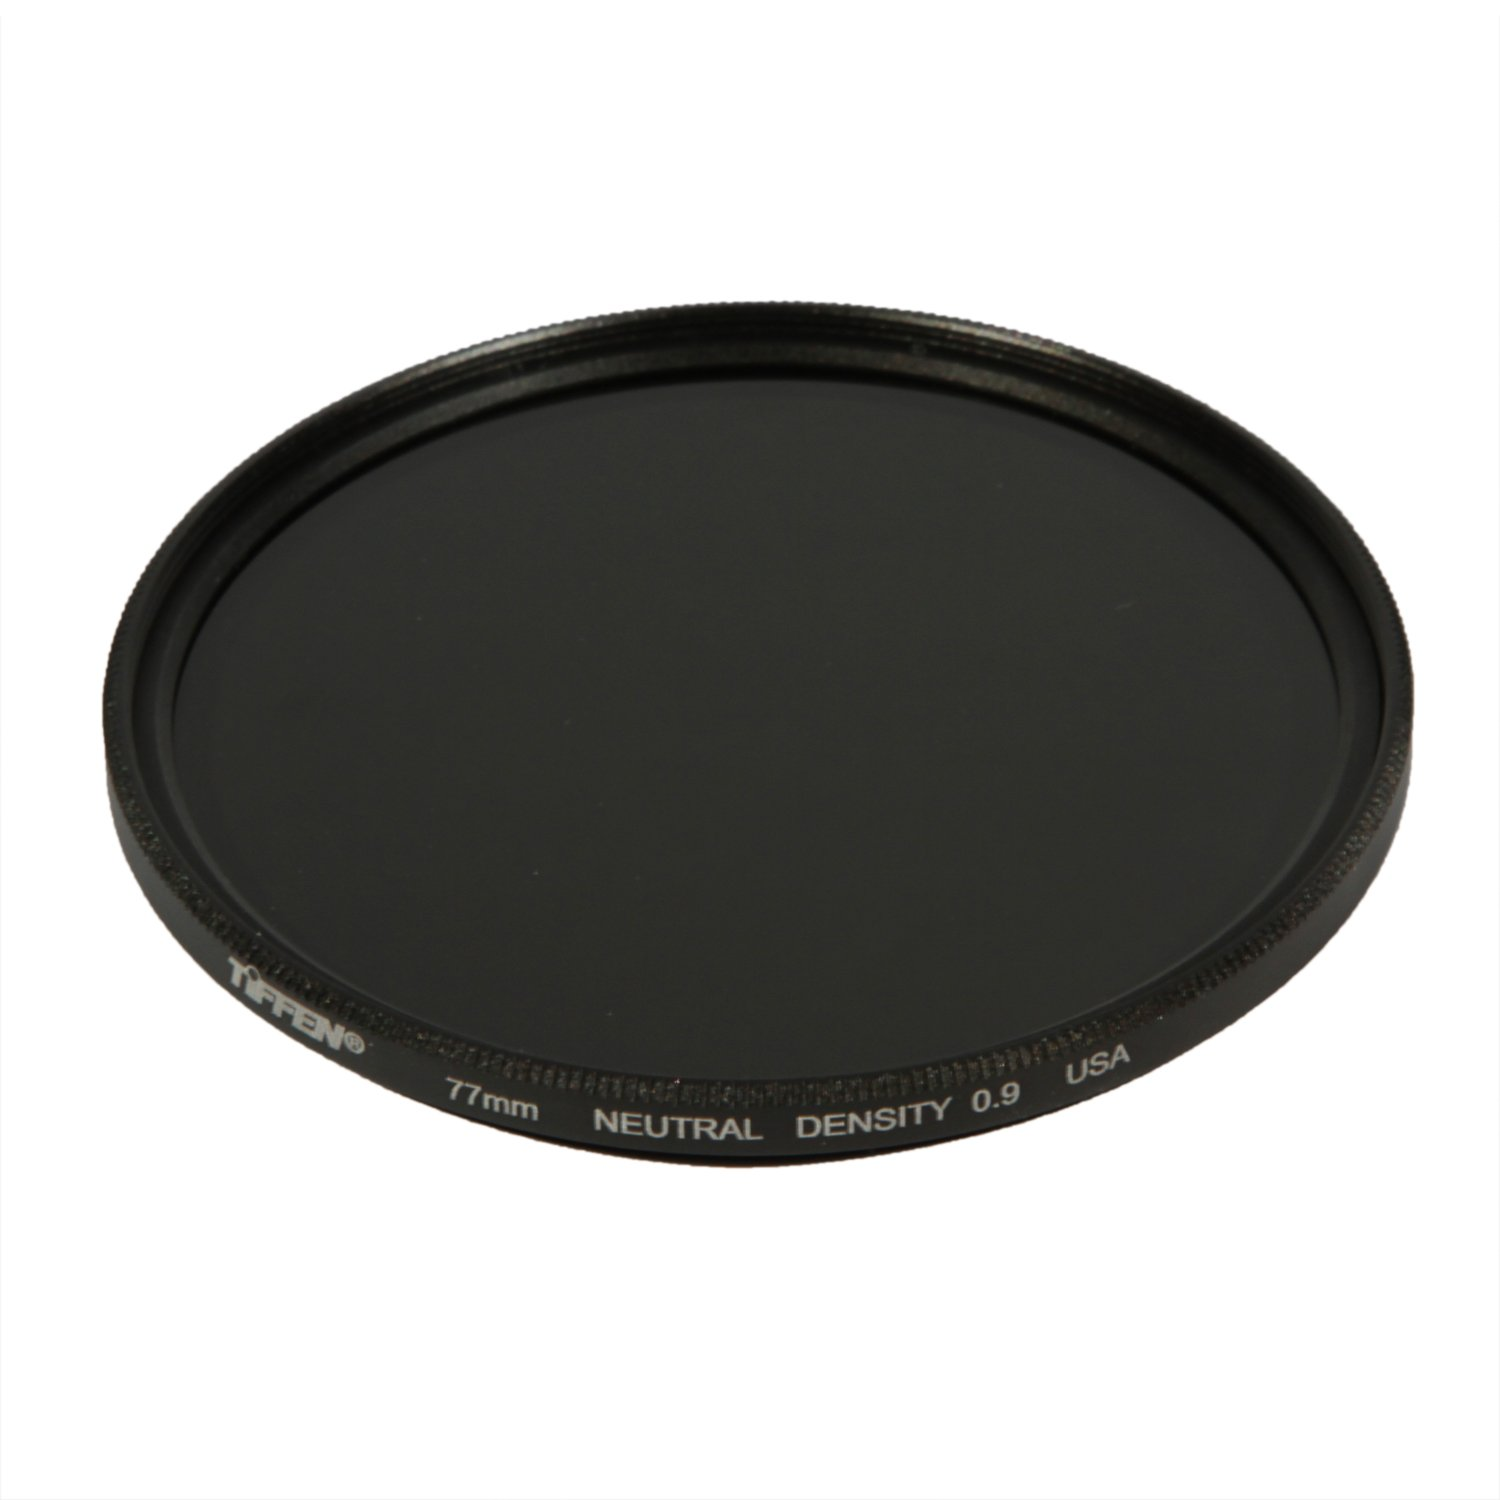 Tiffen 77mm Neutral Density 0.9 Filter by Tiffen